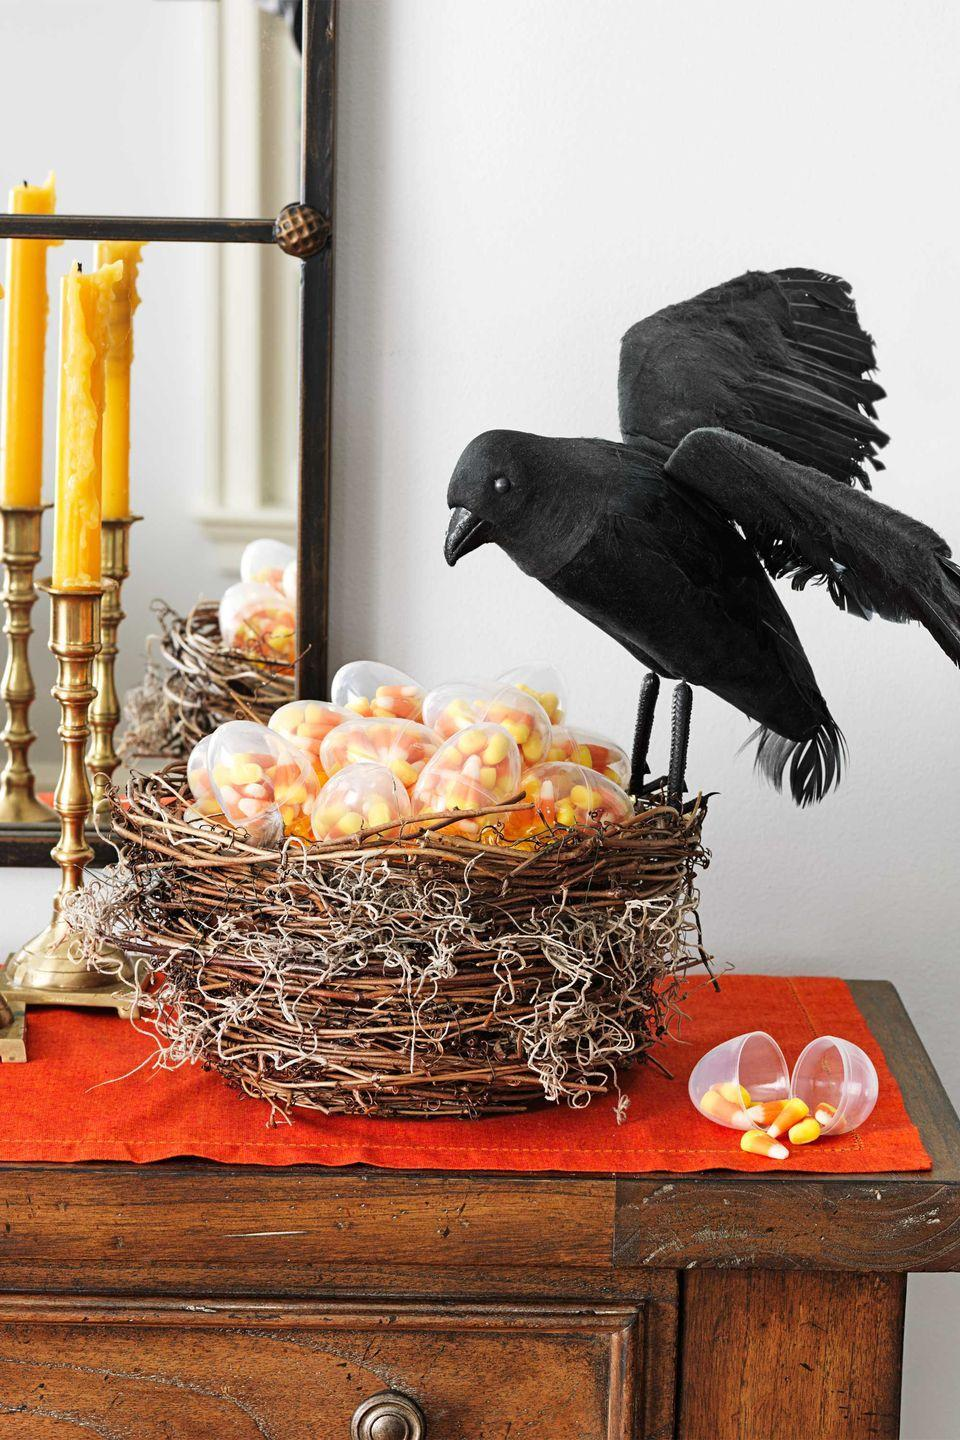 """<p>A crow guards candy corn portioned into <span class=""""redactor-unlink"""">clear plastic eggs</span>. Wrap <span class=""""redactor-unlink"""">grapevine garland</span> around a bowl from the bottom up, using dabs of hot glue to keep it in place. Tuck in a little <span class=""""redactor-unlink"""">Spanish moss</span>; poke the feet of the <span class=""""redactor-unlink"""">crow</span> into the branches to secure it.</p><p><strong>What You'll Need</strong>: <a href=""""https://www.amazon.com/Touch-Black-Feathered-Ravens-Halloween/dp/B07KGD8RTQ/ref=sr_1_5?dchild=1&keywords=fake+raven&qid=1594918771&sr=8-5&tag=syn-yahoo-20&ascsubtag=%5Bartid%7C10070.g.1279%5Bsrc%7Cyahoo-us"""" rel=""""nofollow noopener"""" target=""""_blank"""" data-ylk=""""slk:Fake birds"""" class=""""link rapid-noclick-resp"""">Fake birds</a> ($17, Amazon); <a href=""""https://www.amazon.com/SuperMoss-26911-Spanish-Moss-Natural/dp/B00I6AJ57A/ref=sr_1_1_sspa?dchild=1&keywords=spanish+moss&qid=1595002886&sr=8-1-spons&psc=1&spLa=ZW5jcnlwdGVkUXVhbGlmaWVyPUExTjhOOUROVDg5UTJRJmVuY3J5cHRlZElkPUEwMzQzODYxM0M4WjVaMEE0STlRMyZlbmNyeXB0ZWRBZElkPUEwMTEwMTg0MUQ5MlBaVUVRNTZDSiZ3aWRnZXROYW1lPXNwX2F0ZiZhY3Rpb249Y2xpY2tSZWRpcmVjdCZkb05vdExvZ0NsaWNrPXRydWU%3D&tag=syn-yahoo-20&ascsubtag=%5Bartid%7C10070.g.1279%5Bsrc%7Cyahoo-us"""" rel=""""nofollow noopener"""" target=""""_blank"""" data-ylk=""""slk:Spanish moss"""" class=""""link rapid-noclick-resp"""">Spanish moss</a> ($13, Amazon); <a href=""""https://www.amazon.com/KEIVA-Plastic-Acrylic-Fillable-Ornament/dp/B01NAP8DAX/ref=sr_1_1?dchild=1&keywords=plastic+clear+eggs&qid=1595002930&sr=8-1&tag=syn-yahoo-20&ascsubtag=%5Bartid%7C10070.g.1279%5Bsrc%7Cyahoo-us"""" rel=""""nofollow noopener"""" target=""""_blank"""" data-ylk=""""slk:plastic eggs"""" class=""""link rapid-noclick-resp"""">plastic eggs</a> ($8, Amazon)</p>"""